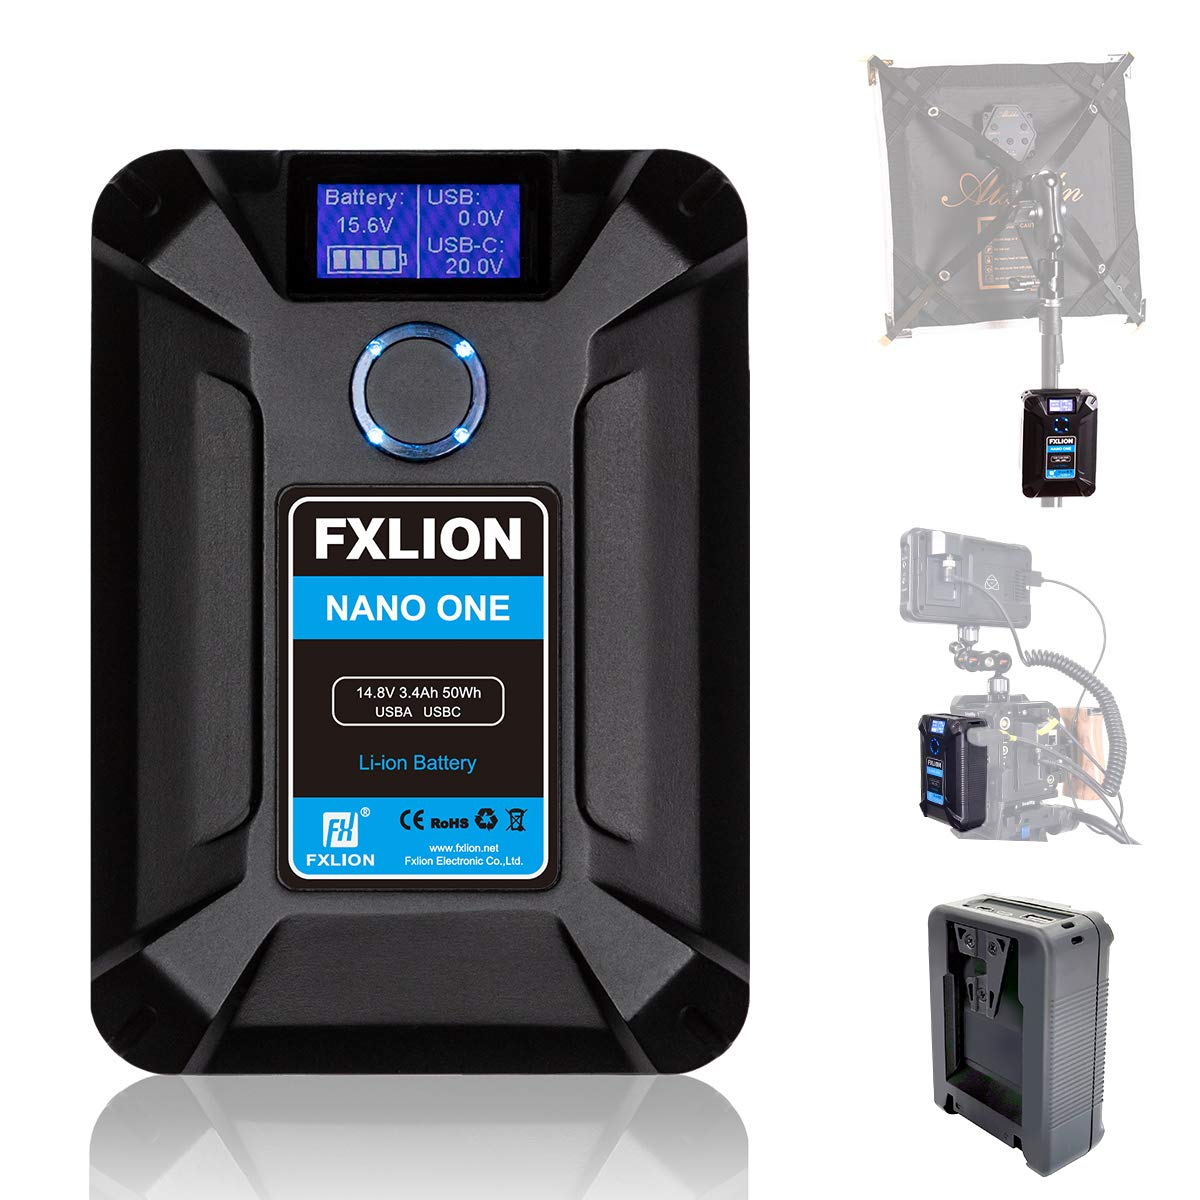 FXLION Nano ONE V Mount/V-Lock Battery 13600mAh(50Wh/14.8V) with D-TAP,USB-C,USB-A, Micro USB Plugs, 310g Mini Power Bank for Cameras, Camcorders,Large LED Lights, Monitors, MacBook and Smartphone by Moman